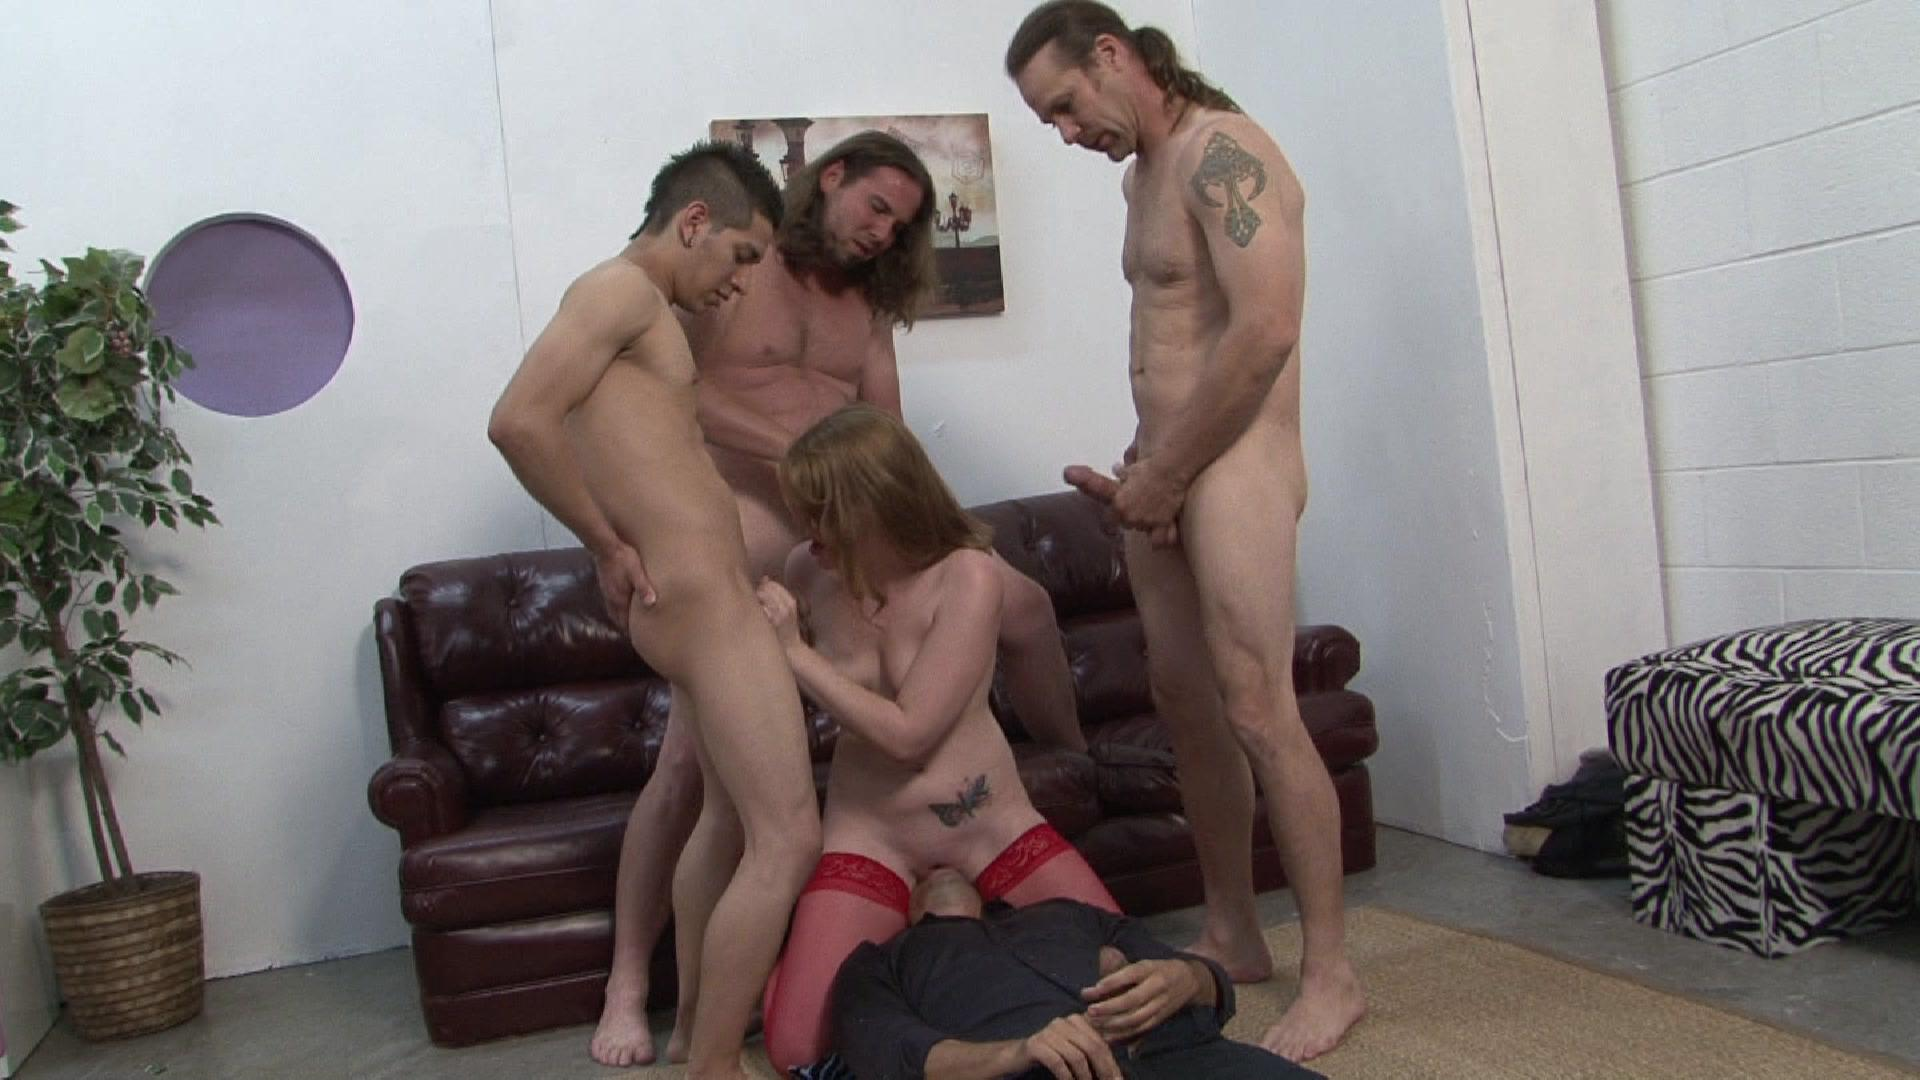 Cuckold Gang Bang 5 xvideos163180